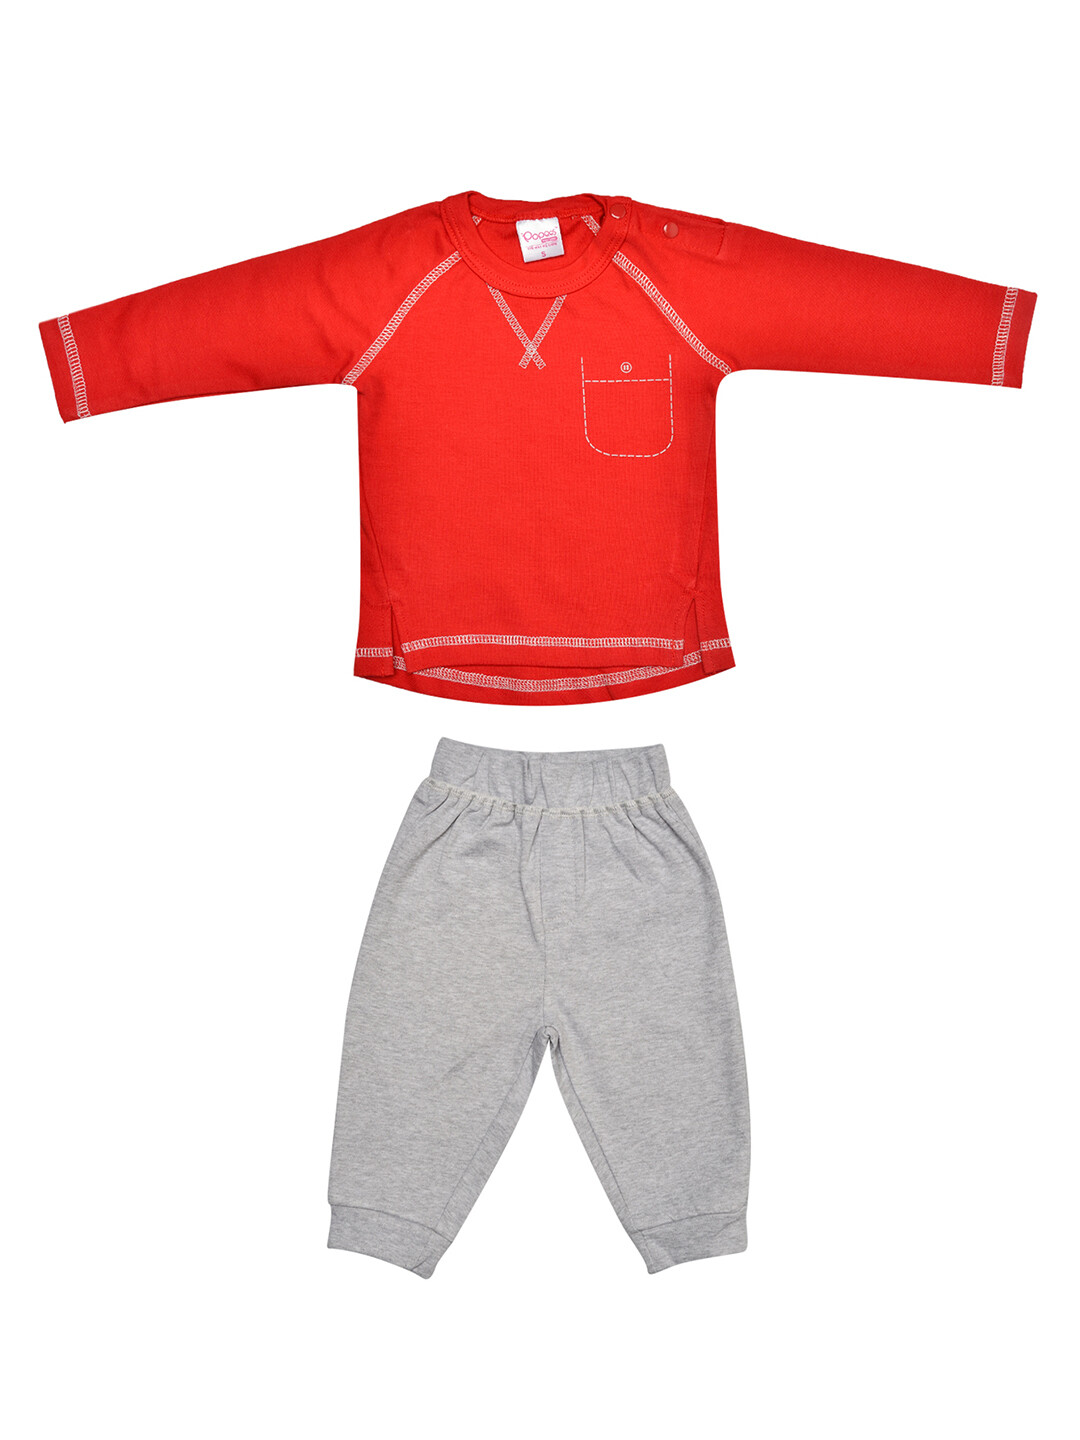 Fives Red Full Sleeves Round Neck T-shirt with Lounge pant